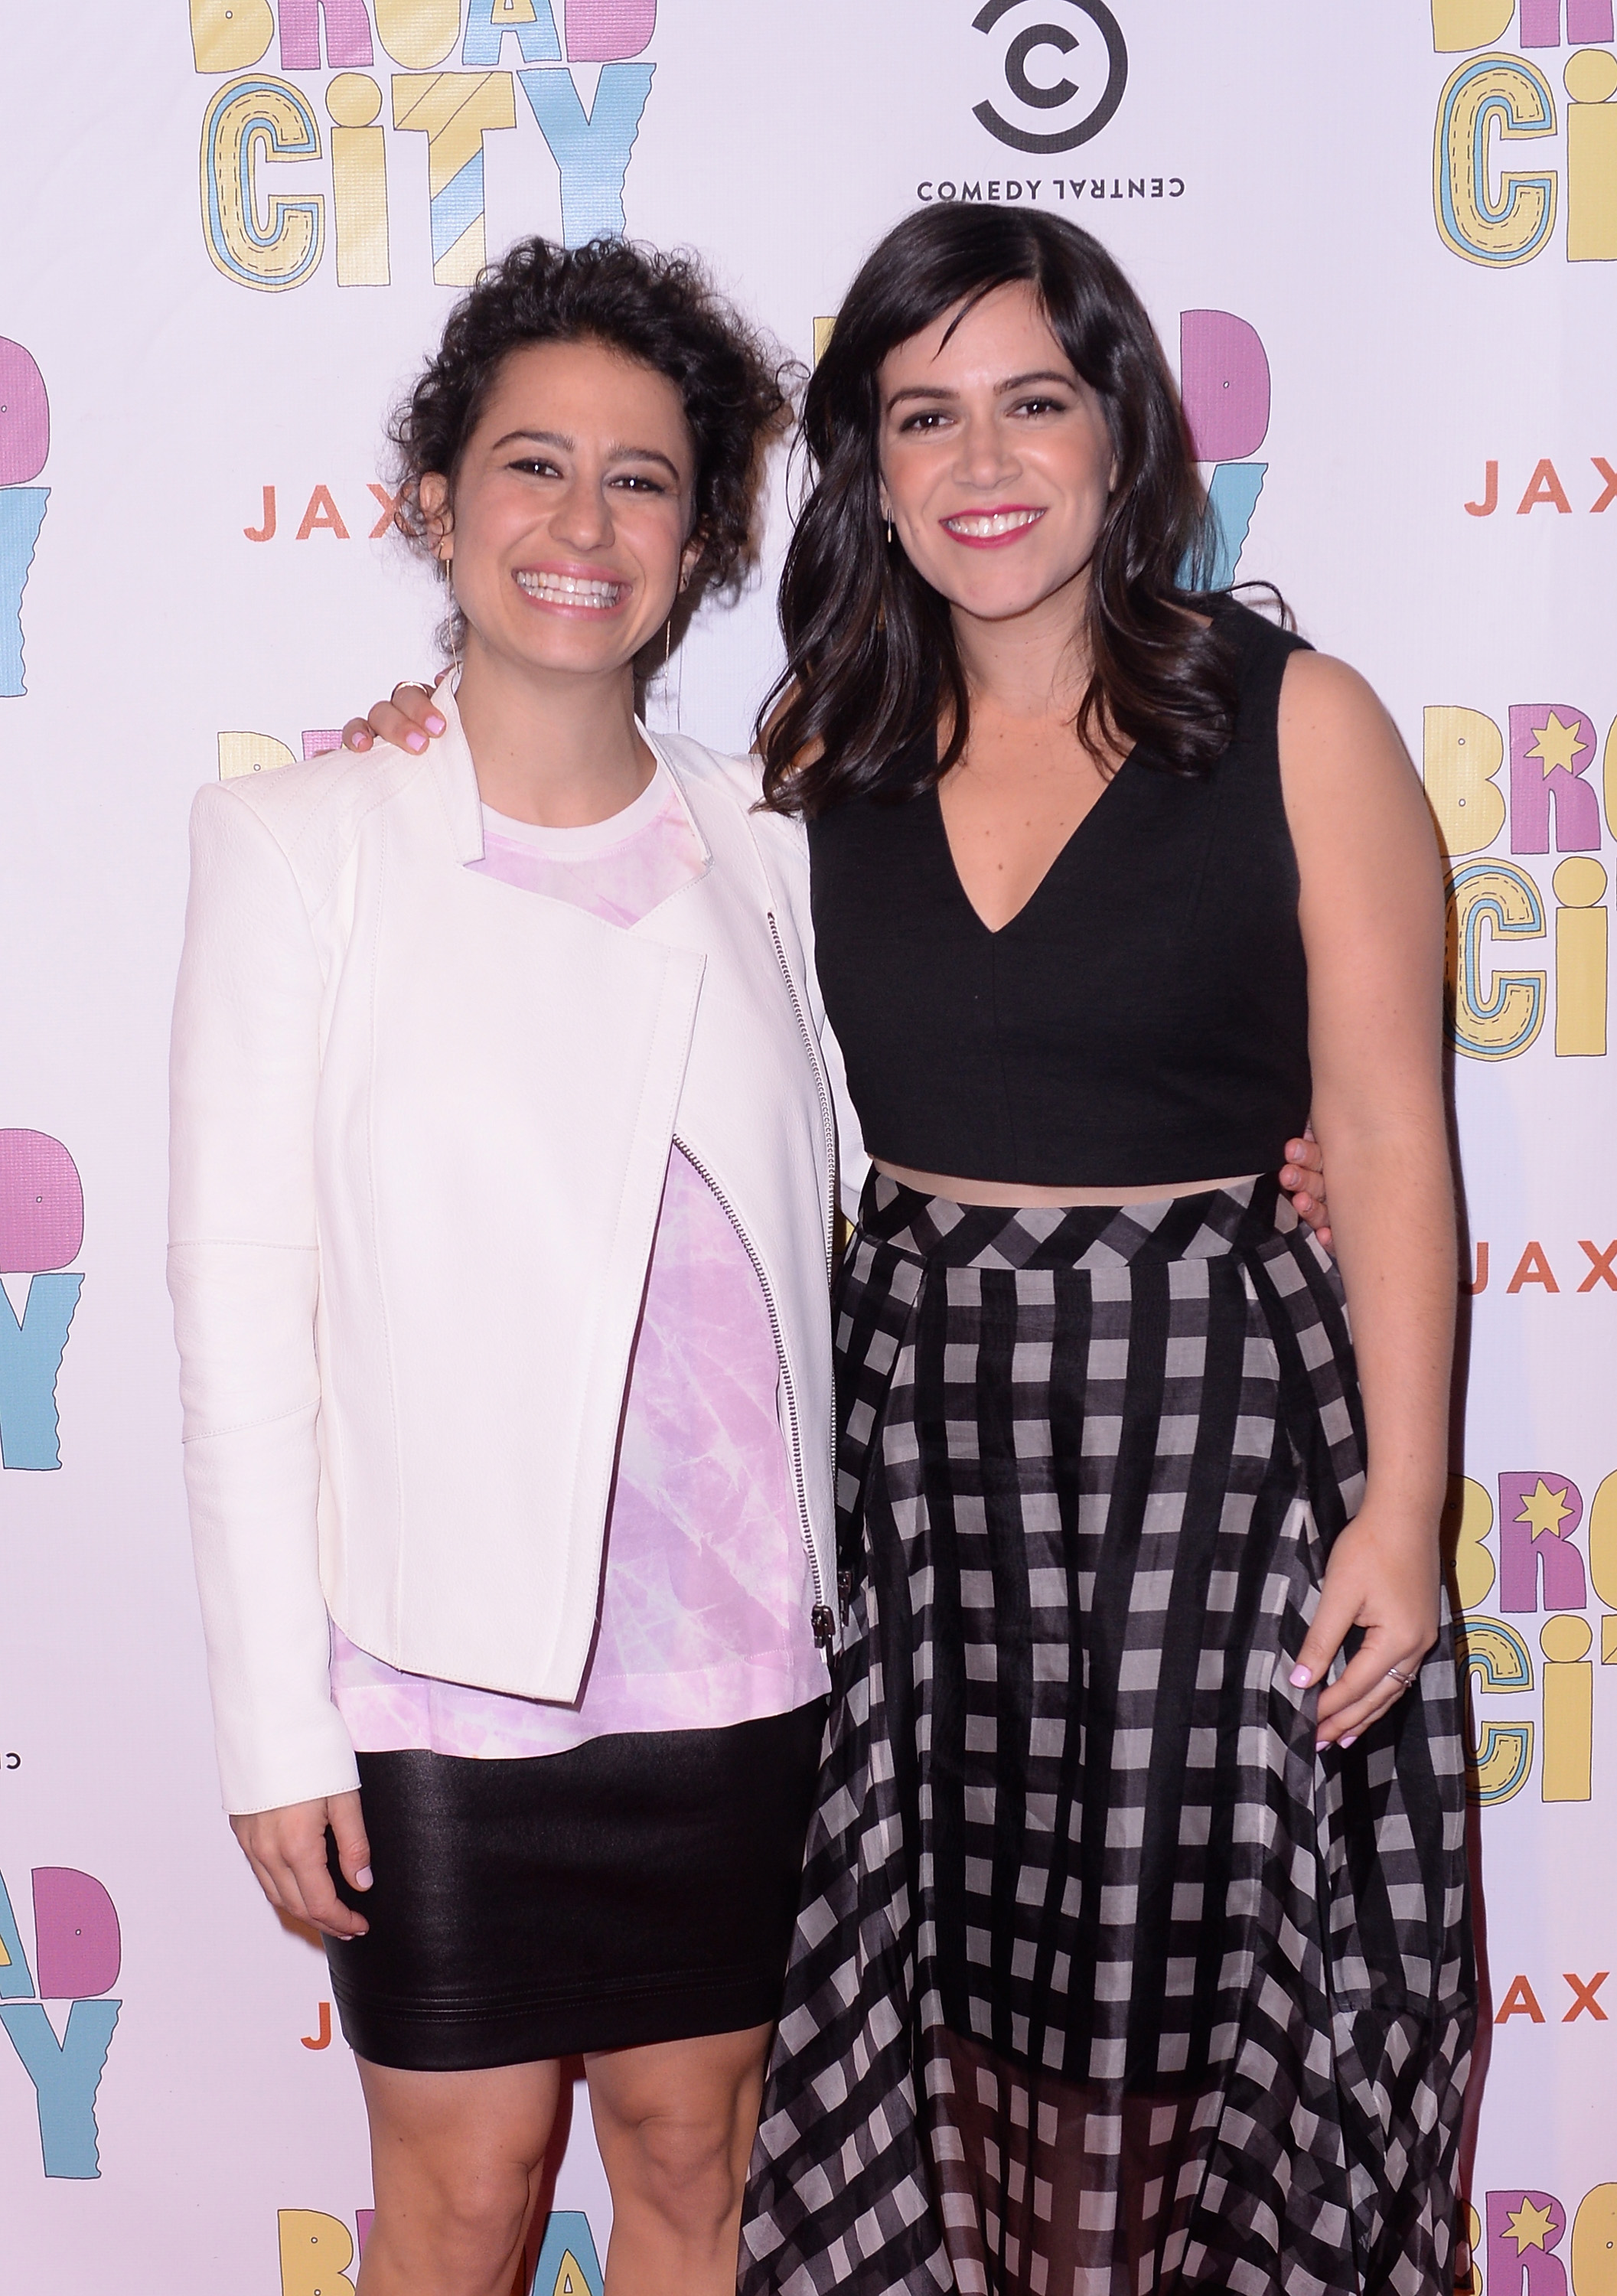 Actresses/writers Ilana Glazer and Abbi Jacobson attend The Broad City Season 2 Premiere Party on January 7, 2015 in New York City.  (Stephen Lovekin--Getty Images for Comedy Central)